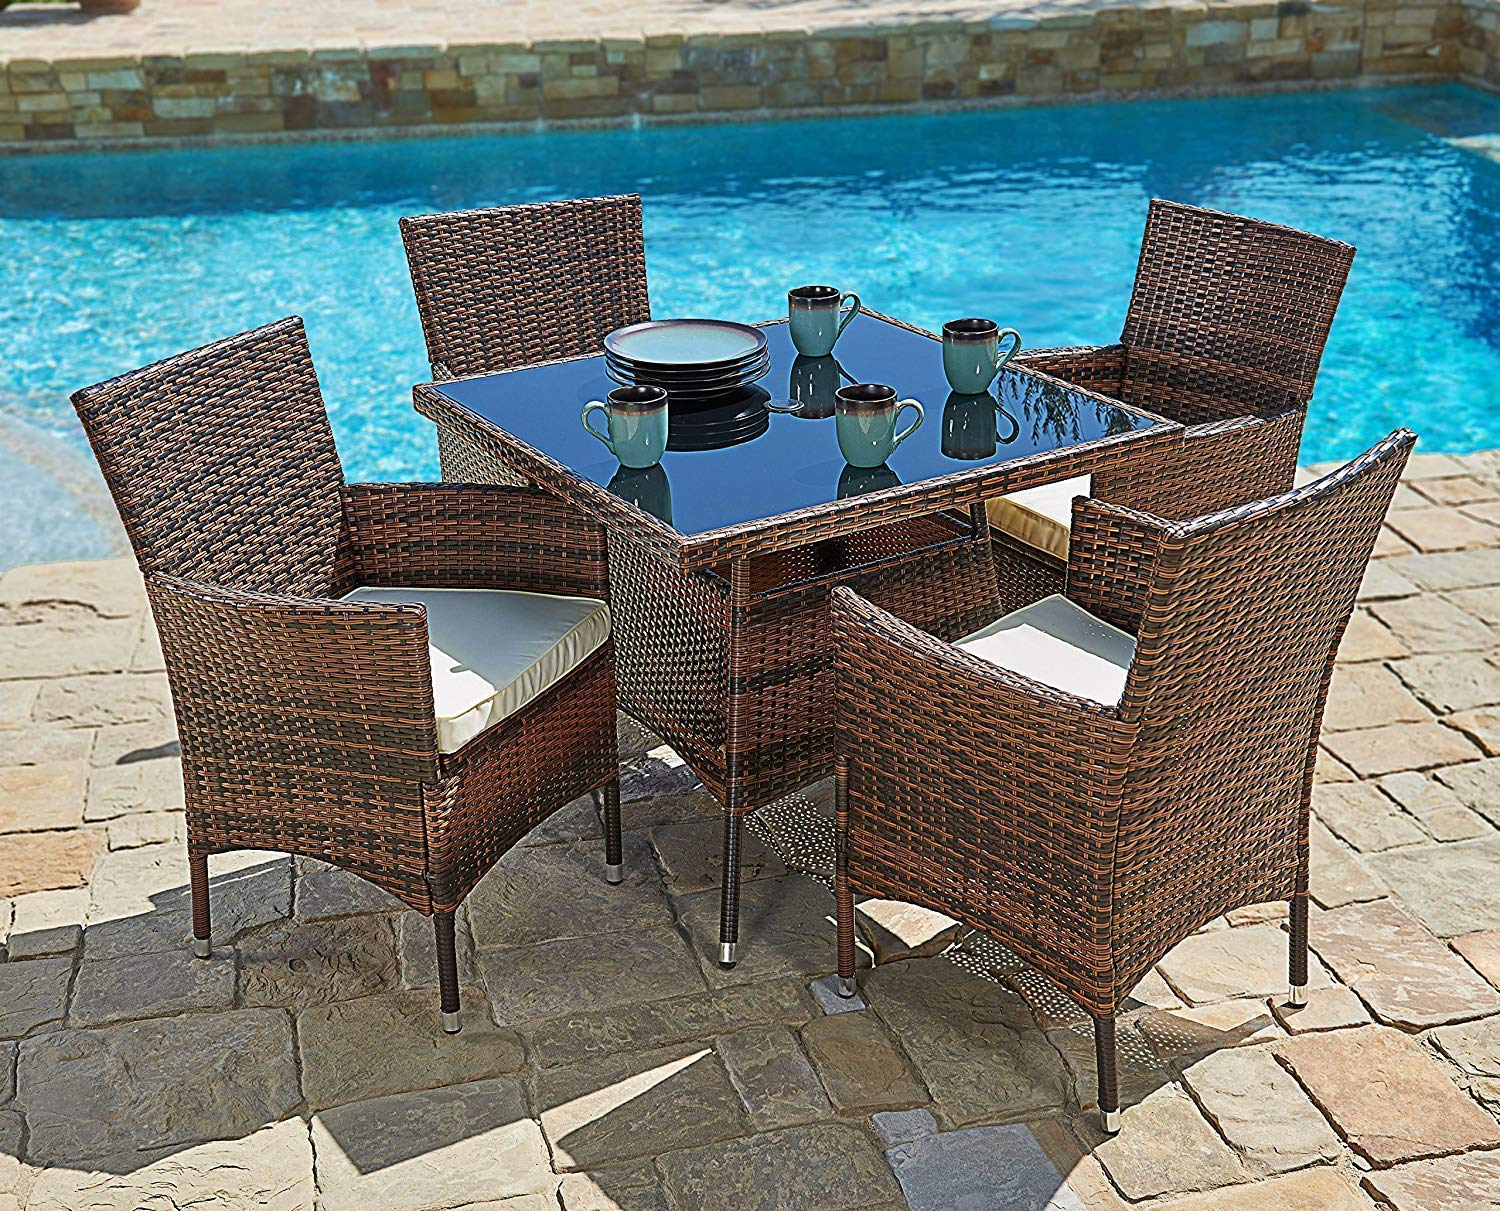 SUNCROWN Outdoor Furniture All-Weather Square Wicker Dining Table and Chairs